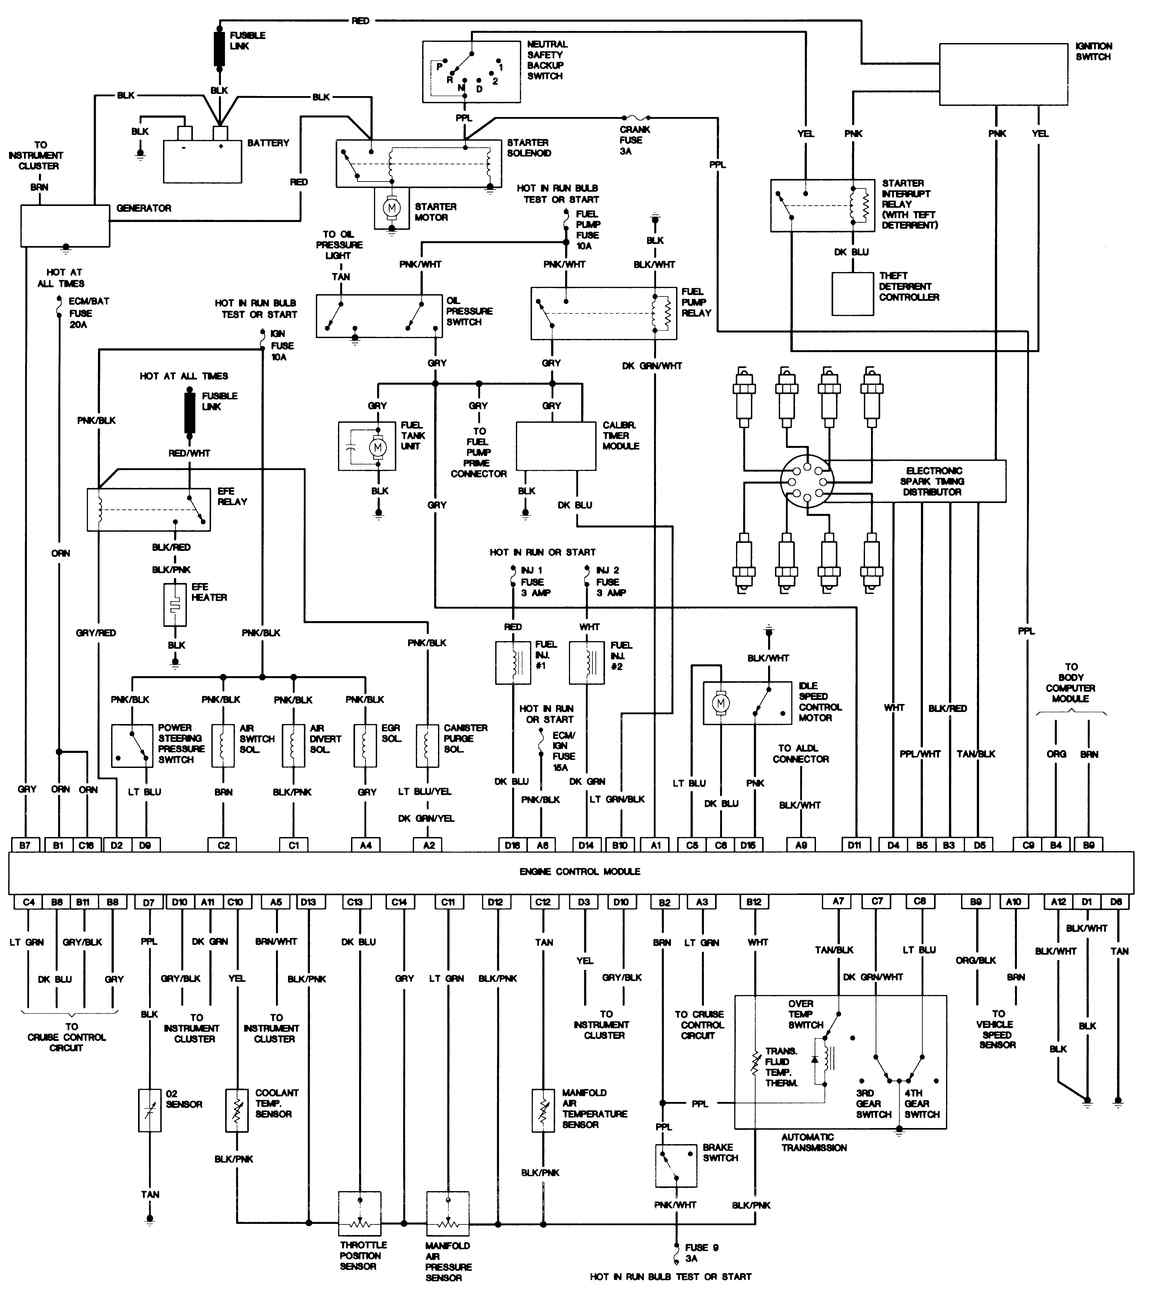 2000 Cadillac Escalade Stereo Wiring Diagram from diagramweb.net